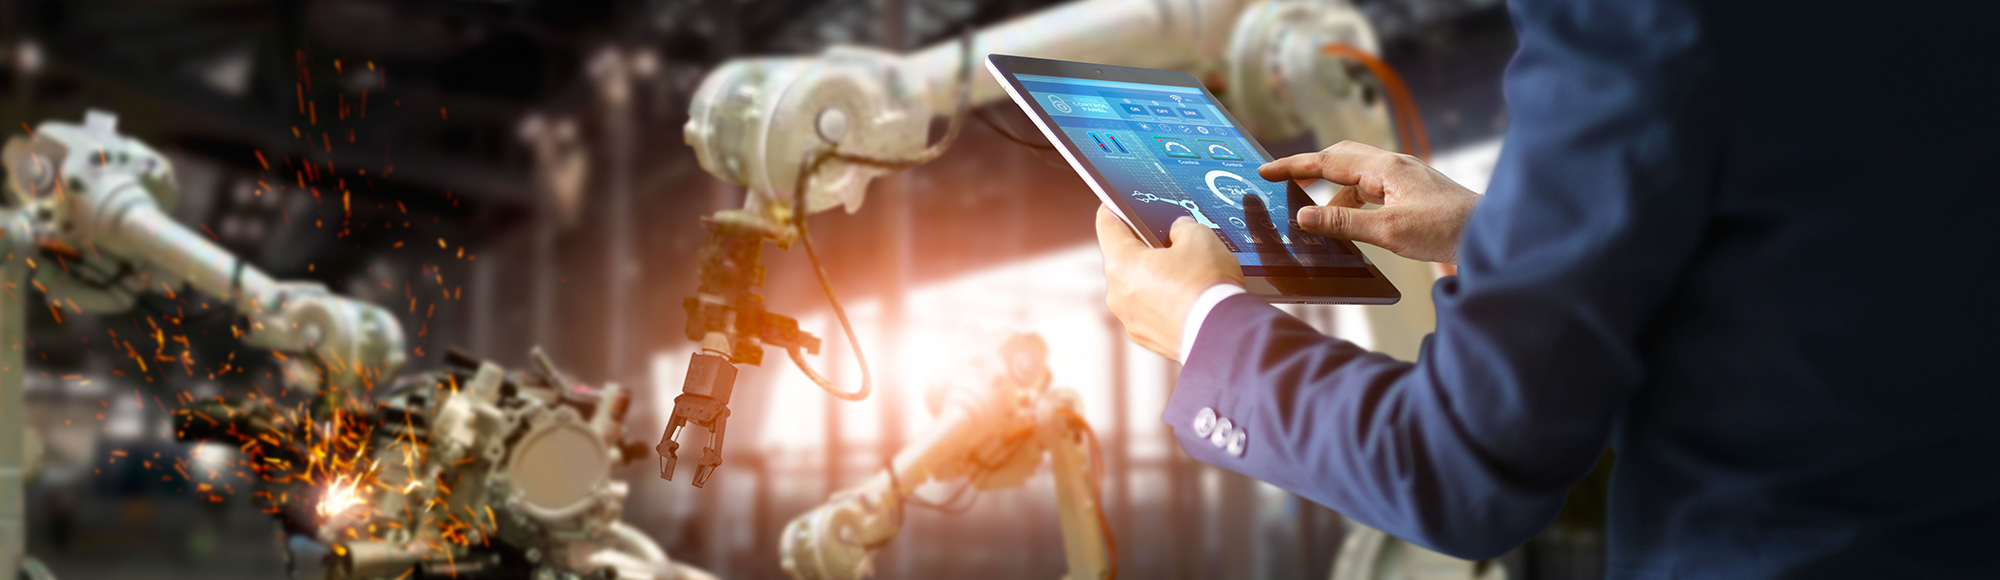 User with tablet in front of industrial robots.